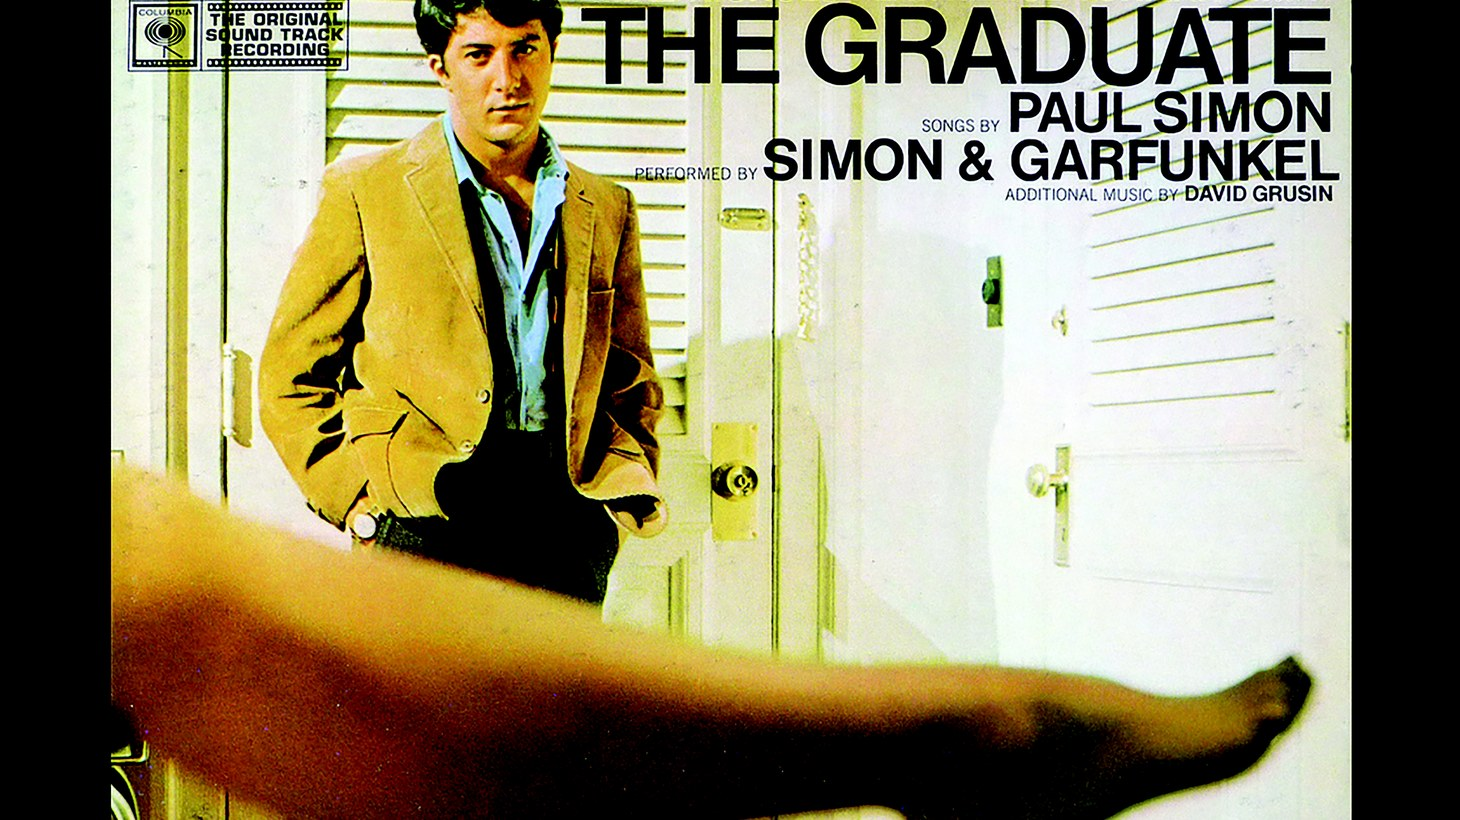 """Robert Gober: The Graduate,"" 2015, by Gary Cannone, a mock album cover inserts a sculpture of a leg by Robert Gober into the cover for the soundtrack for ""The Graduate."""